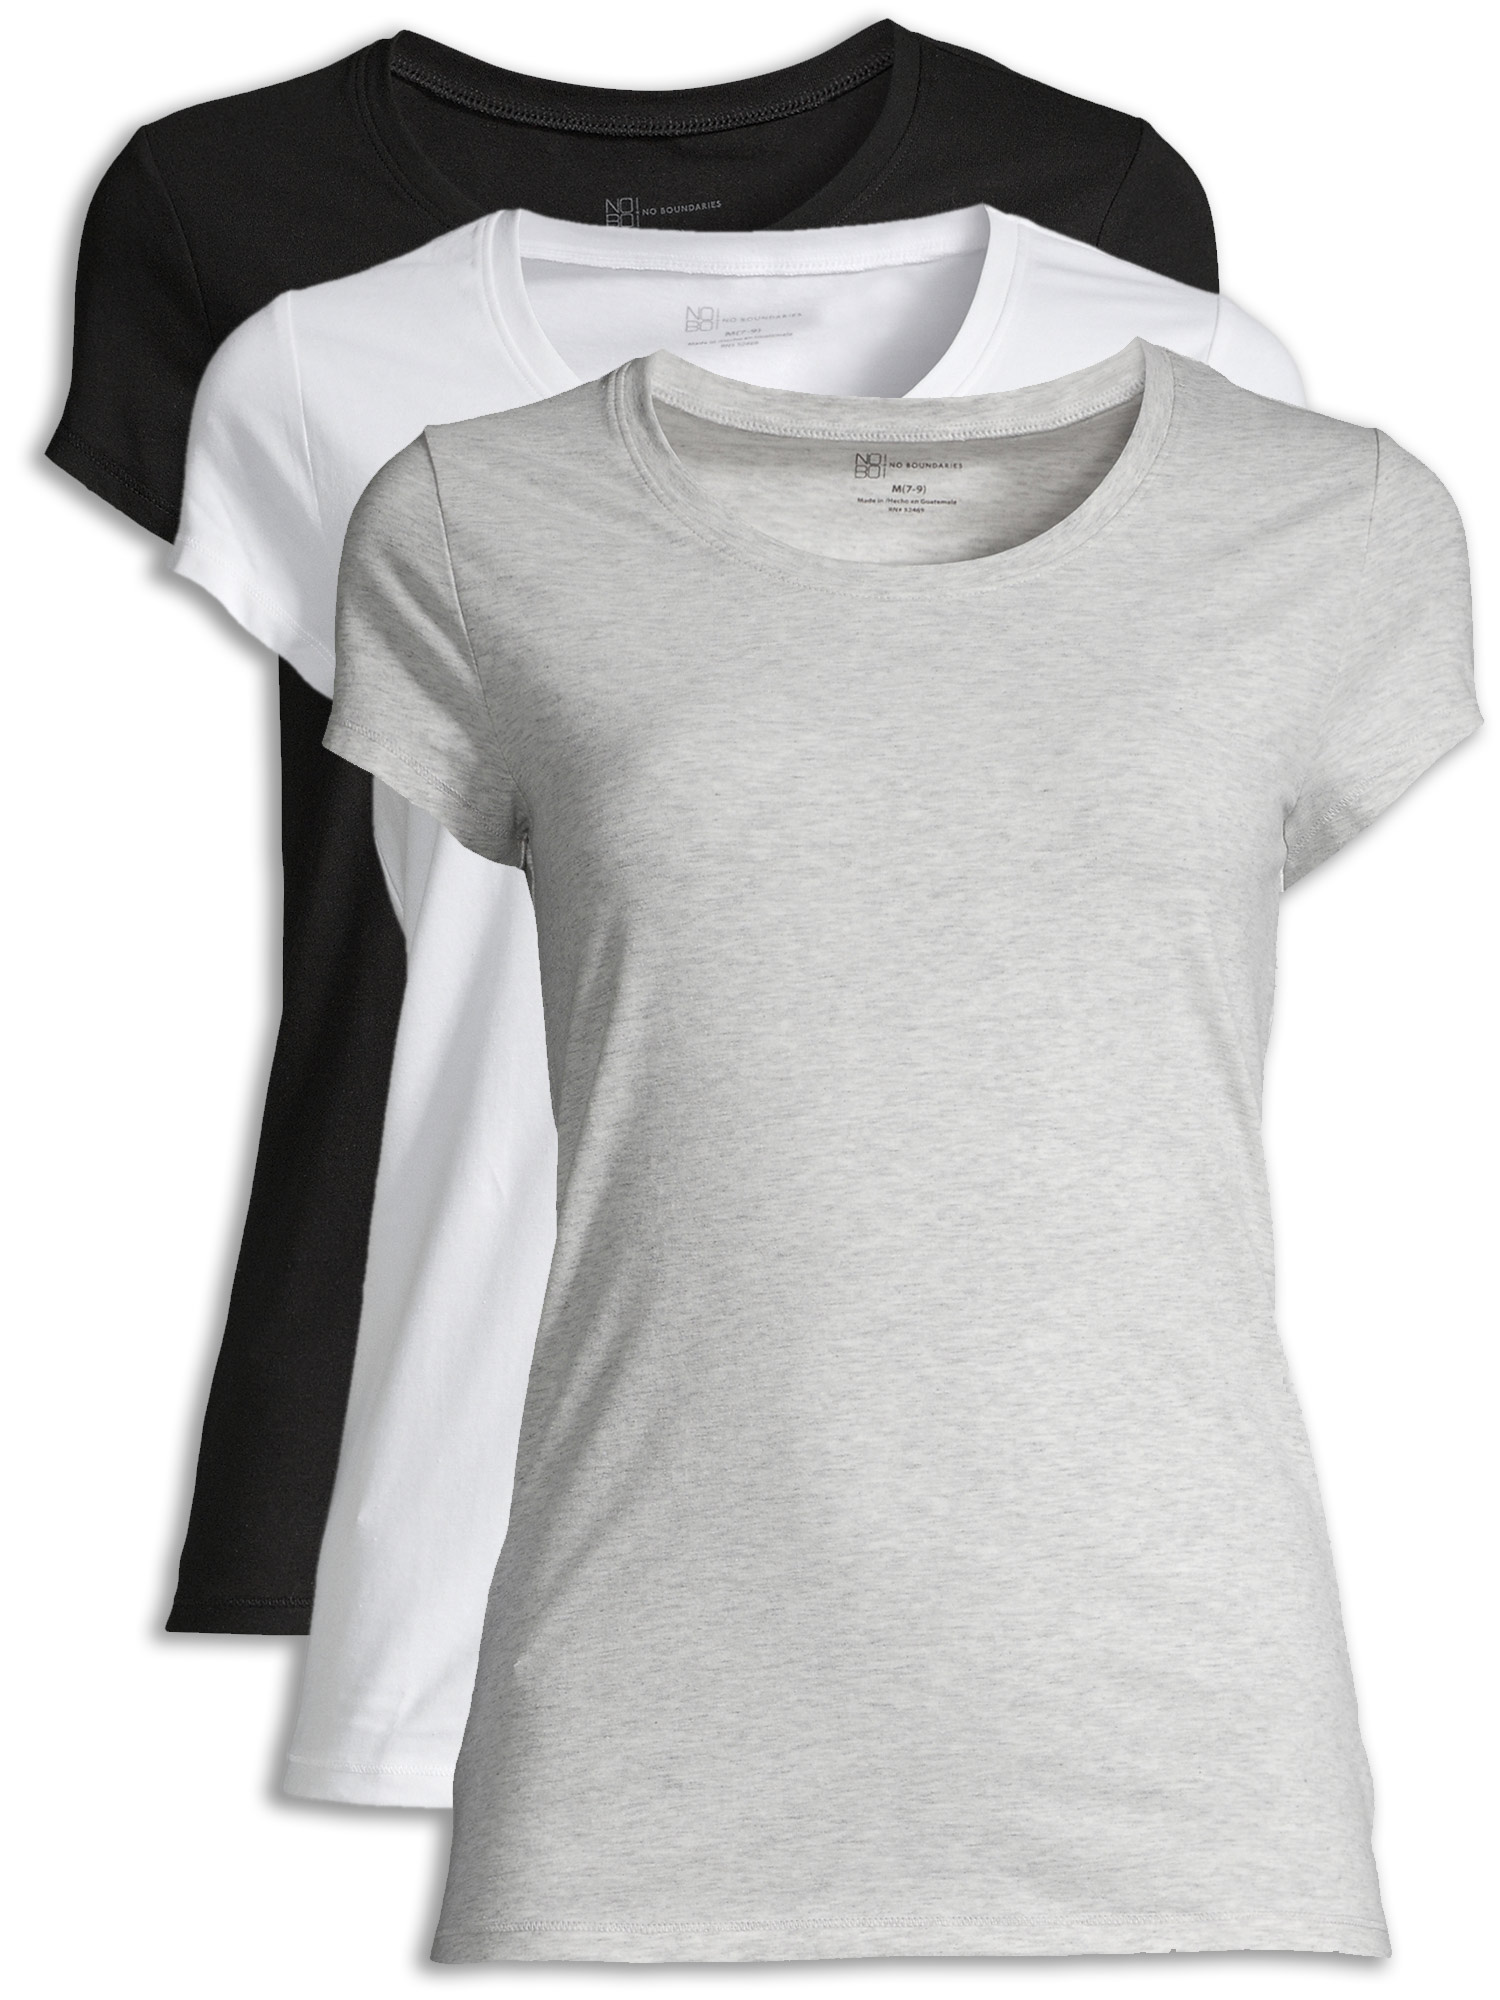 T-Shirt Plain Graphic T Shirts Girls Tops Us Navy Not Kiss It Fitness